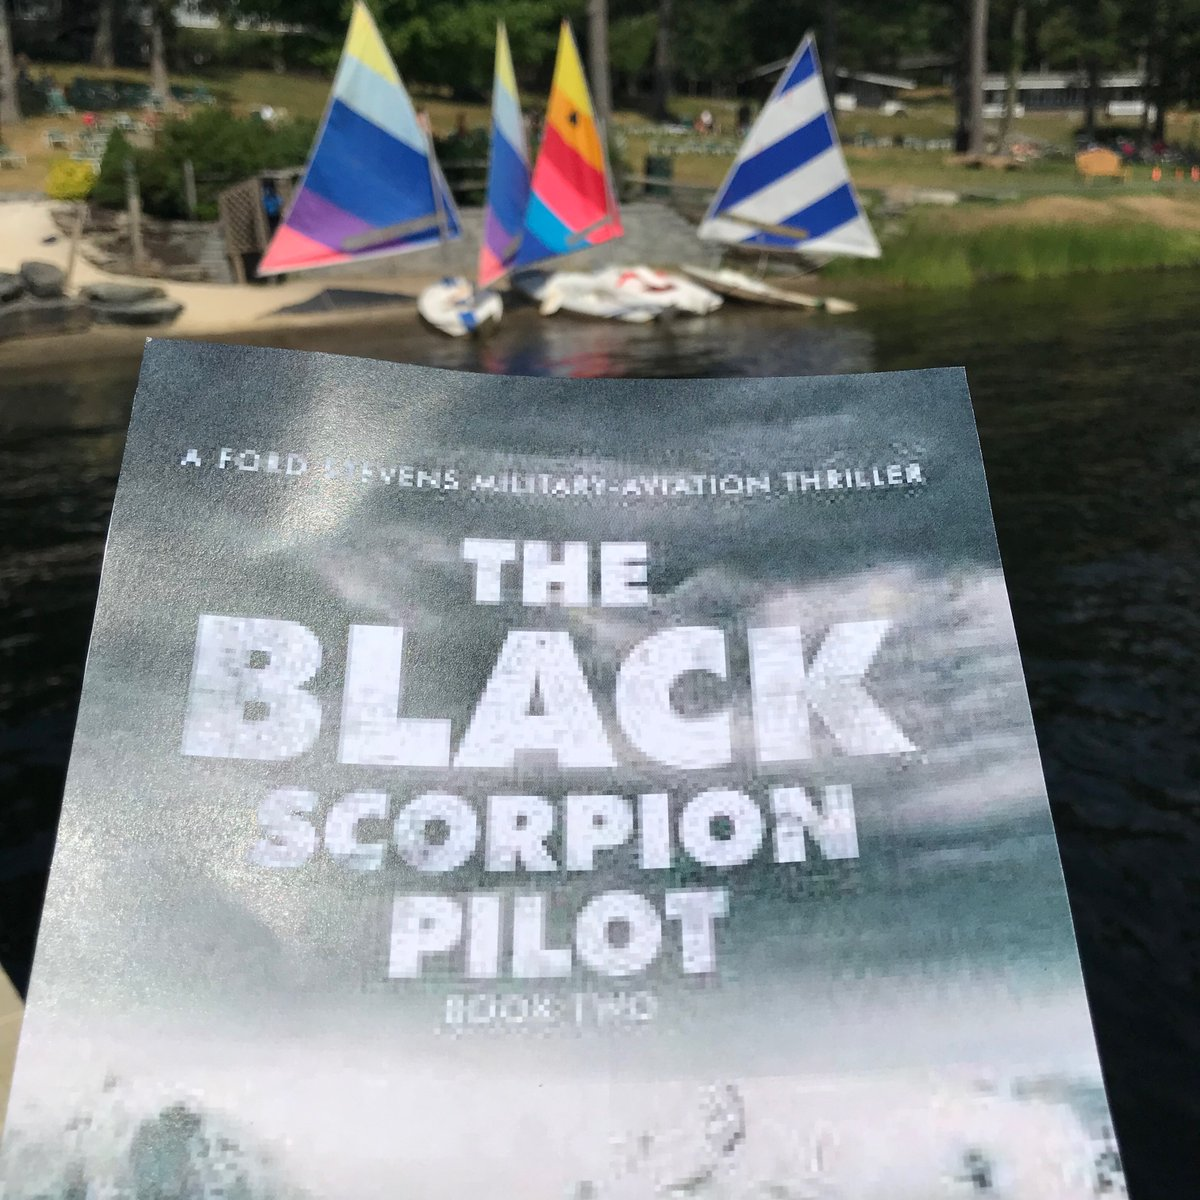 "Thanks for allowing me to feature Woodloch Pines in ""The Black Scorpion Pilot"" book!  You guys rock.   @Woodloch  @lodgeatwoodloch @visithawley @WoodlochSprings @WoodlochPines  #woodloch #woodlochpines #woodlochpinesresort #hawleypa #thankyou https://t.co/WbzIPCI0gU"